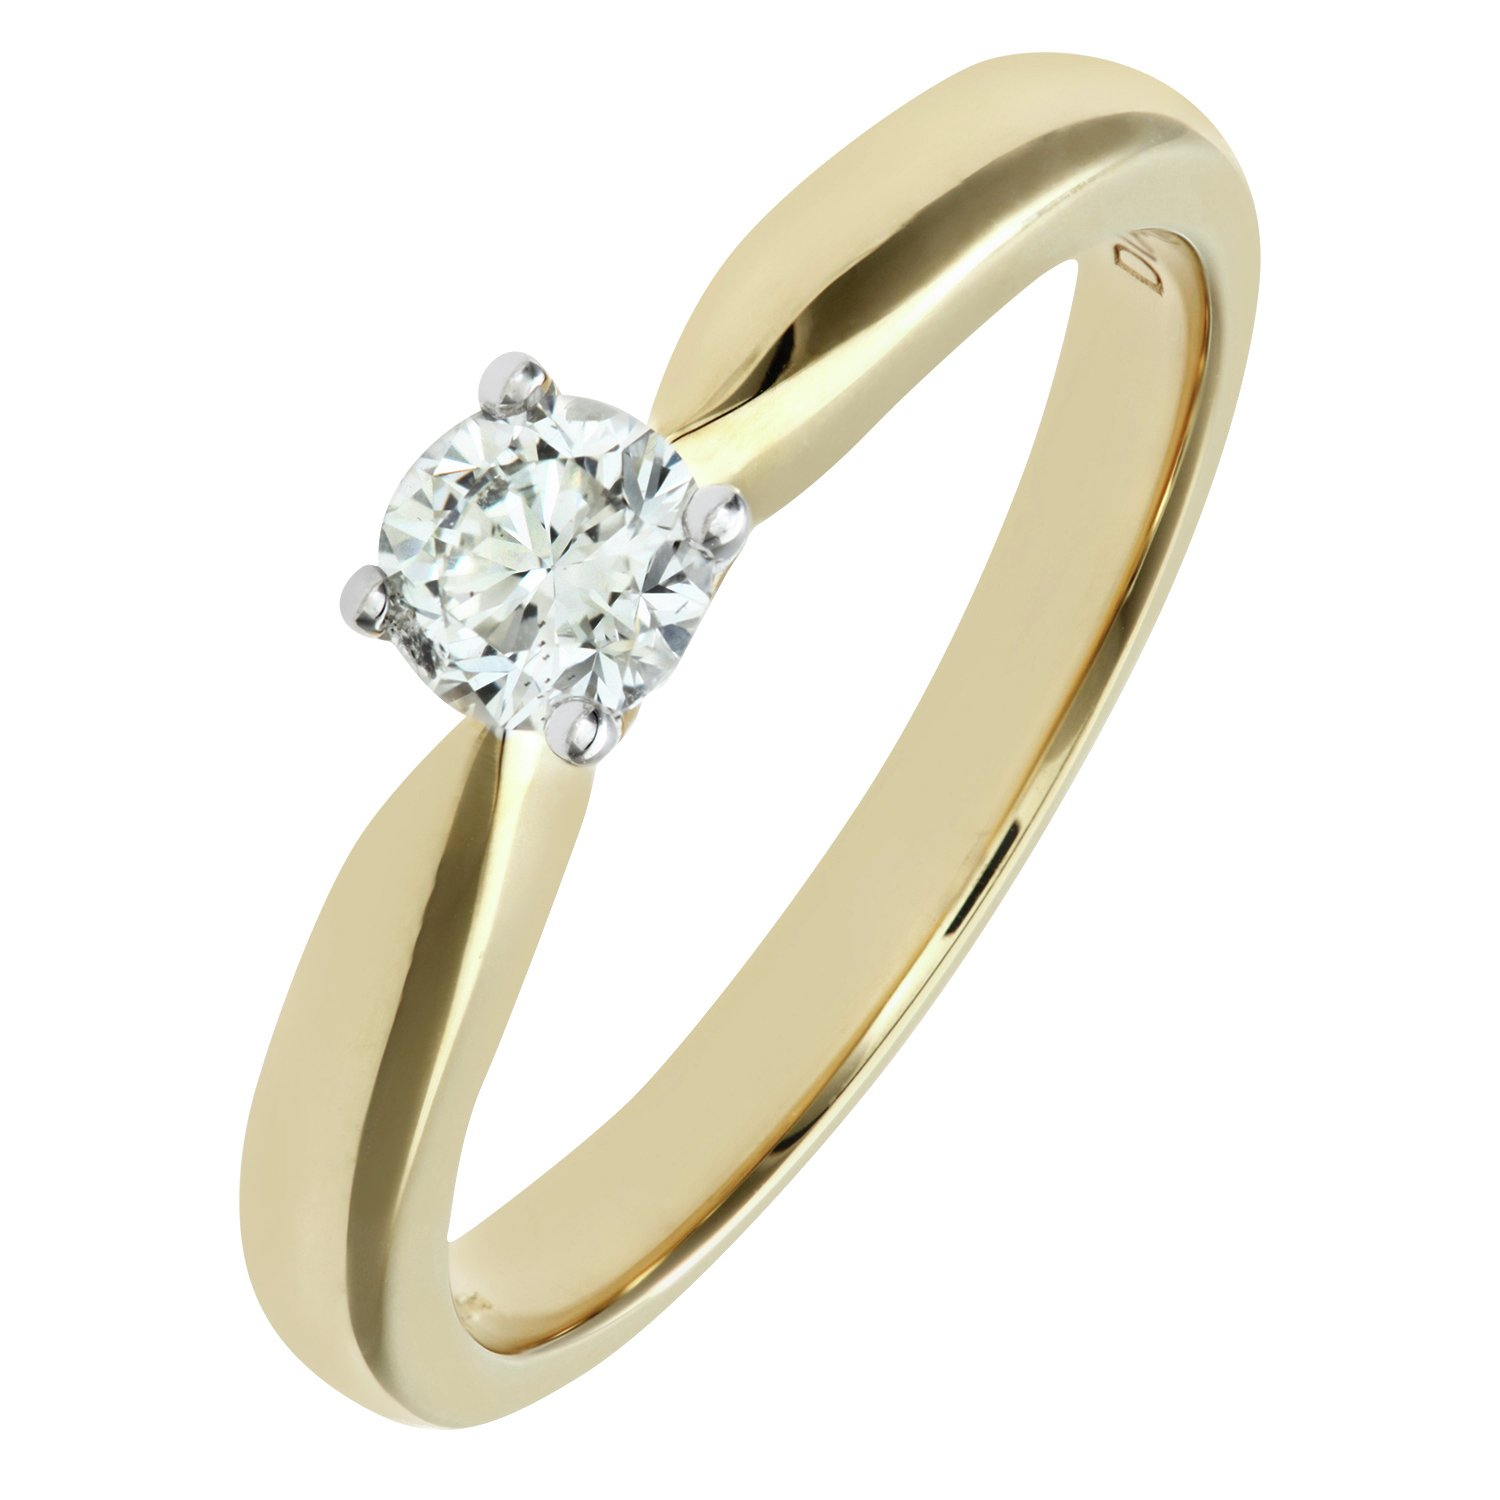 Made For You - 18 Carat Gold - 033 Carat Solitaire Ring - Size Q